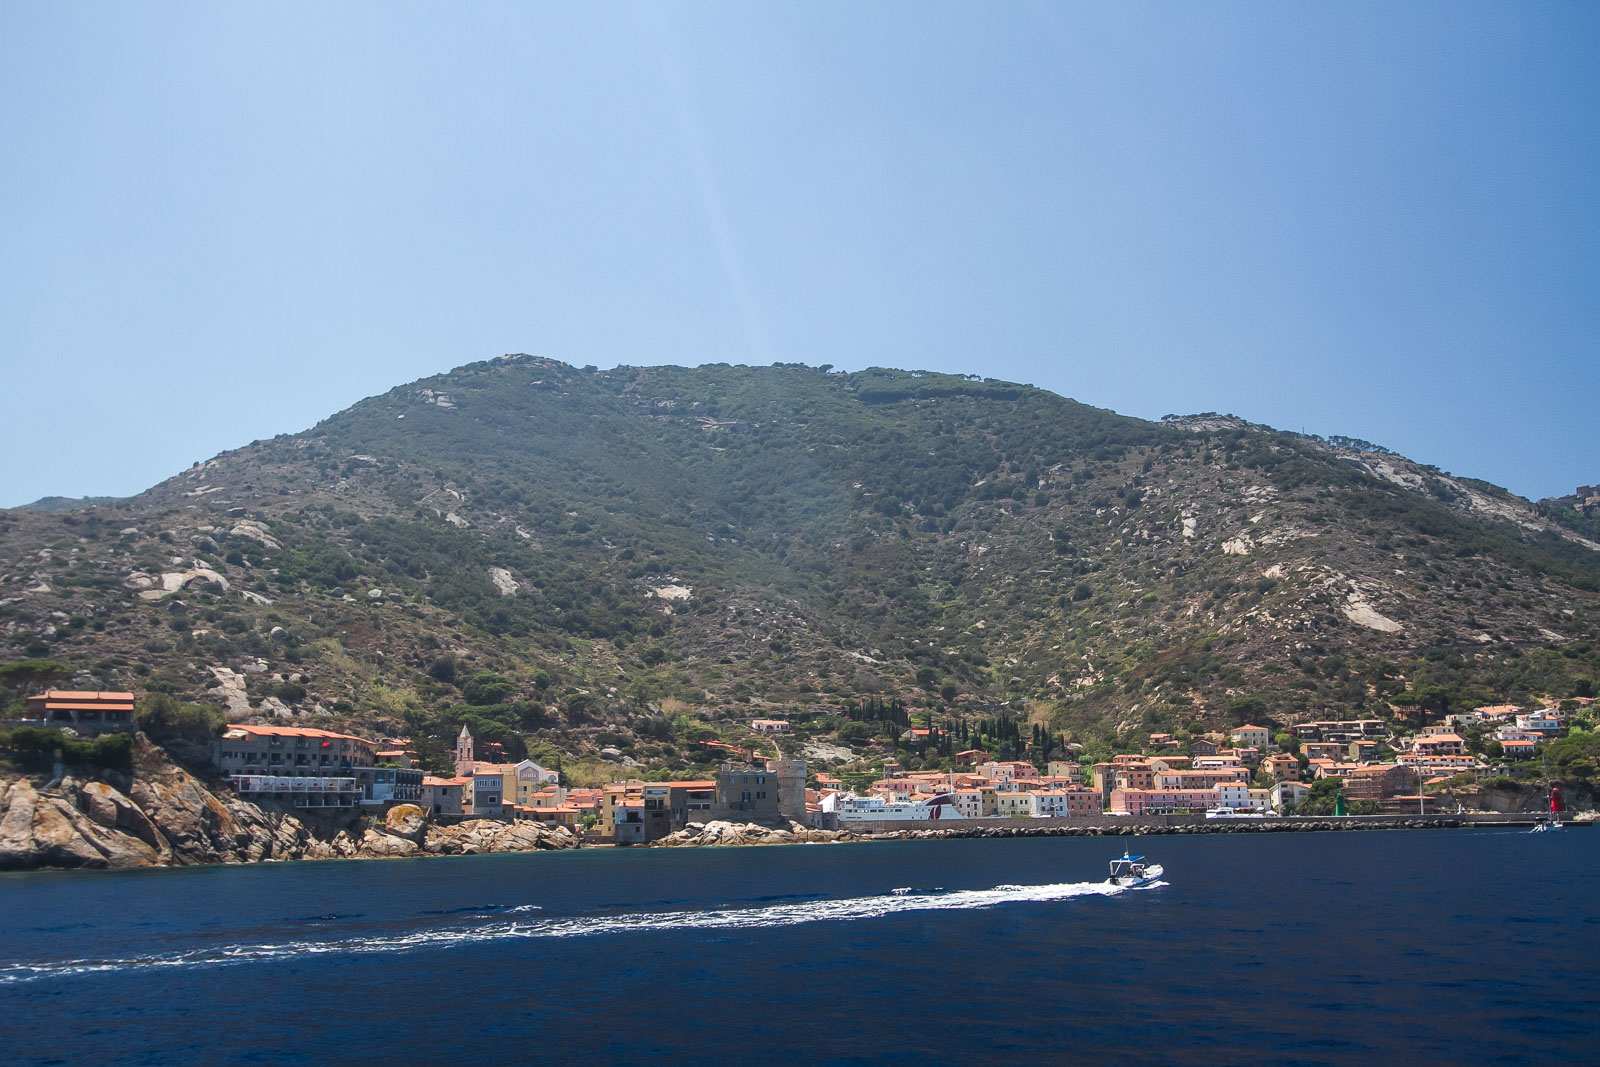 Giglio is also a contrasting place in strong summer light as the hillside rises behind the main port town.